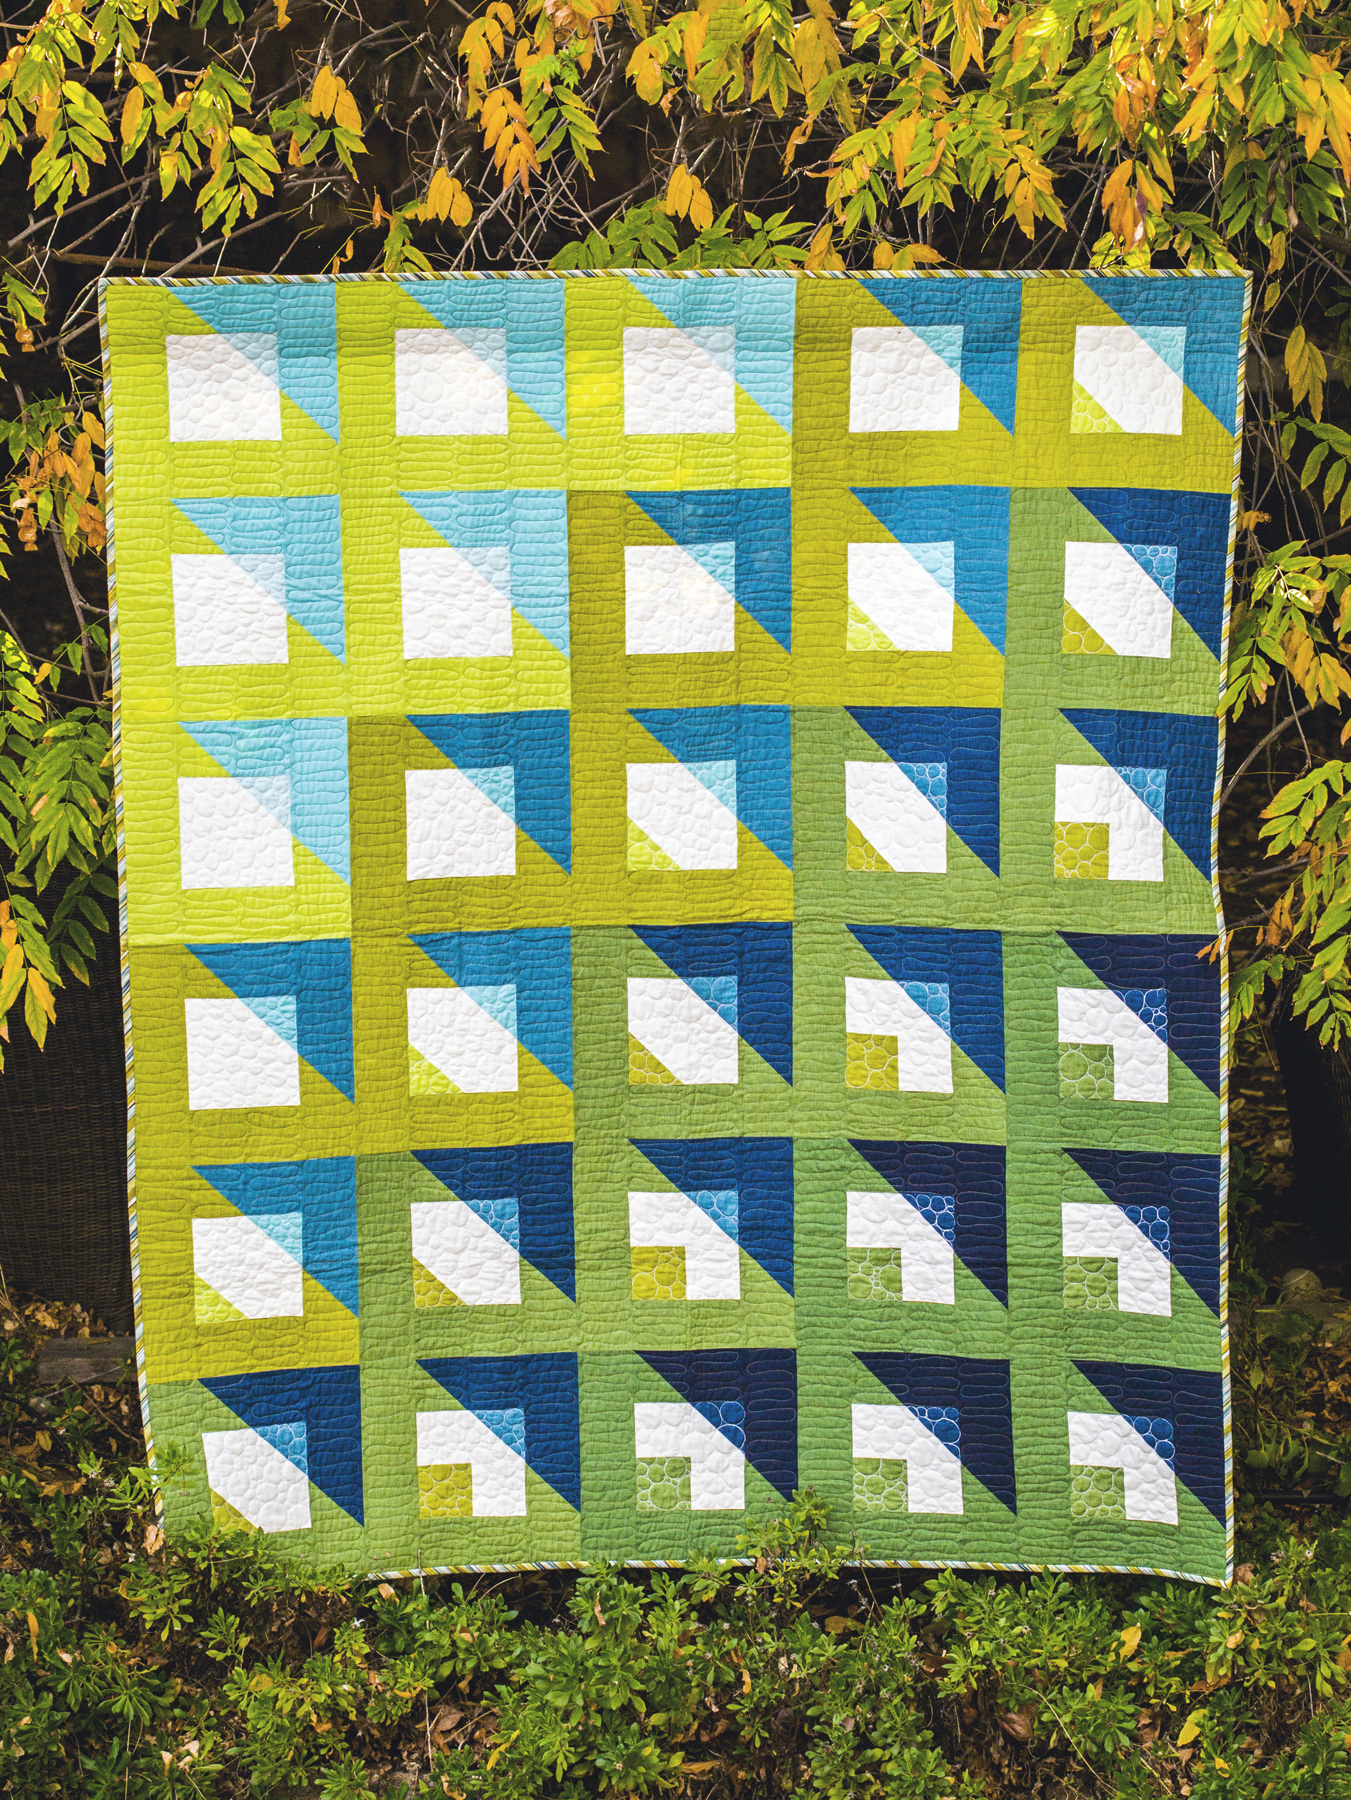 from las do pantone at quiltinspire patchwork posted strip swap orange s vegas will nephew pinterest quilt sara on fig images serendipity modern guild plan possible in quilting best quilts vic yr